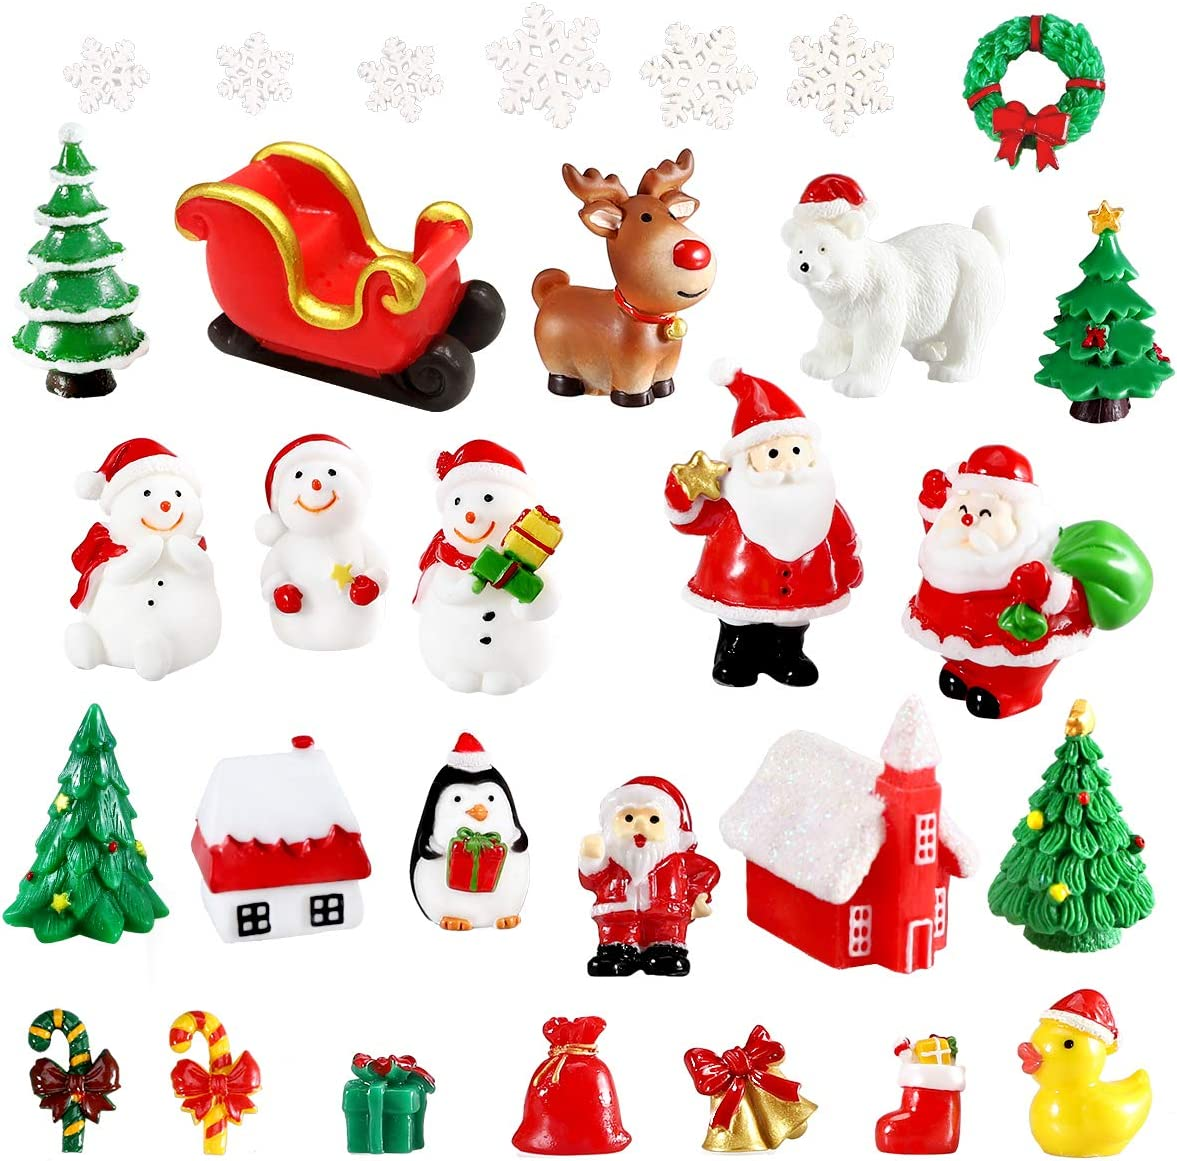 Urradia 30Pcs Christmas Miniature Figurines for Crafts Mini Ornaments Christmas Village Accessories Snow Globes Kits Fairy Garden Dollhouse Decorations for Xmas Party Santa Claus Snowman Reindeer